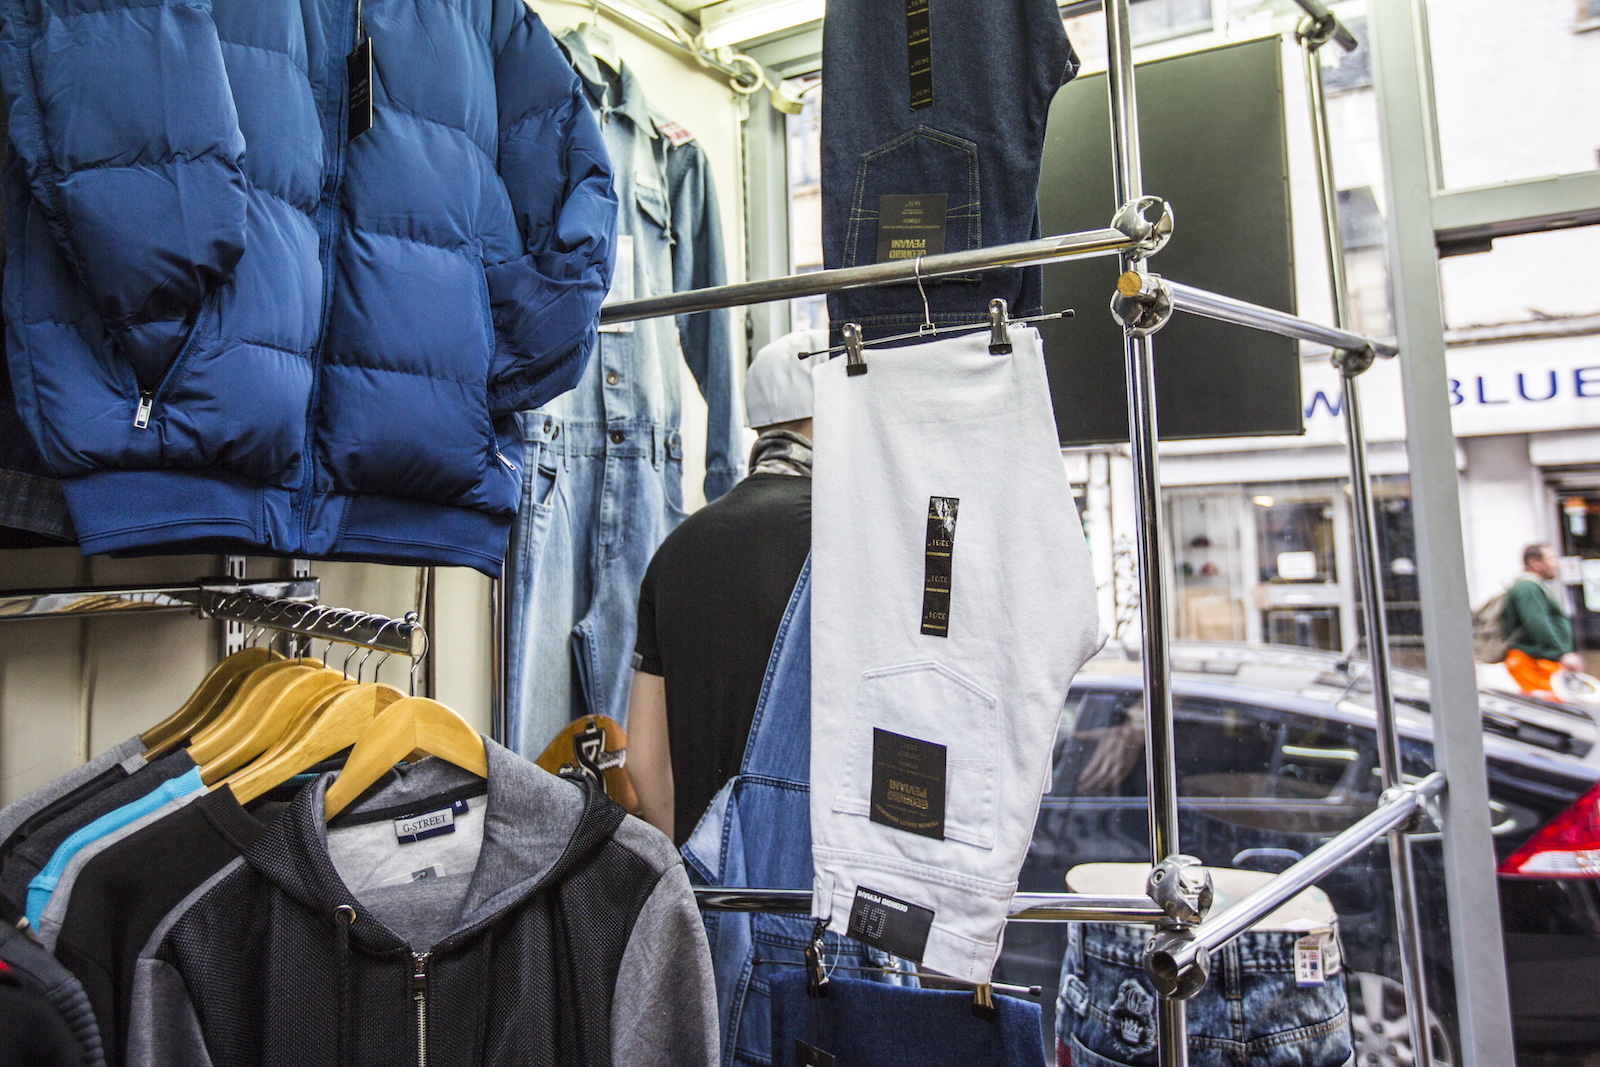 a5cb3573 I enter, and see in front of me a treasure trove of dungarees, combat  jackets, jeans and jorts. Looking closer, every single item is Georgio  Peviani.